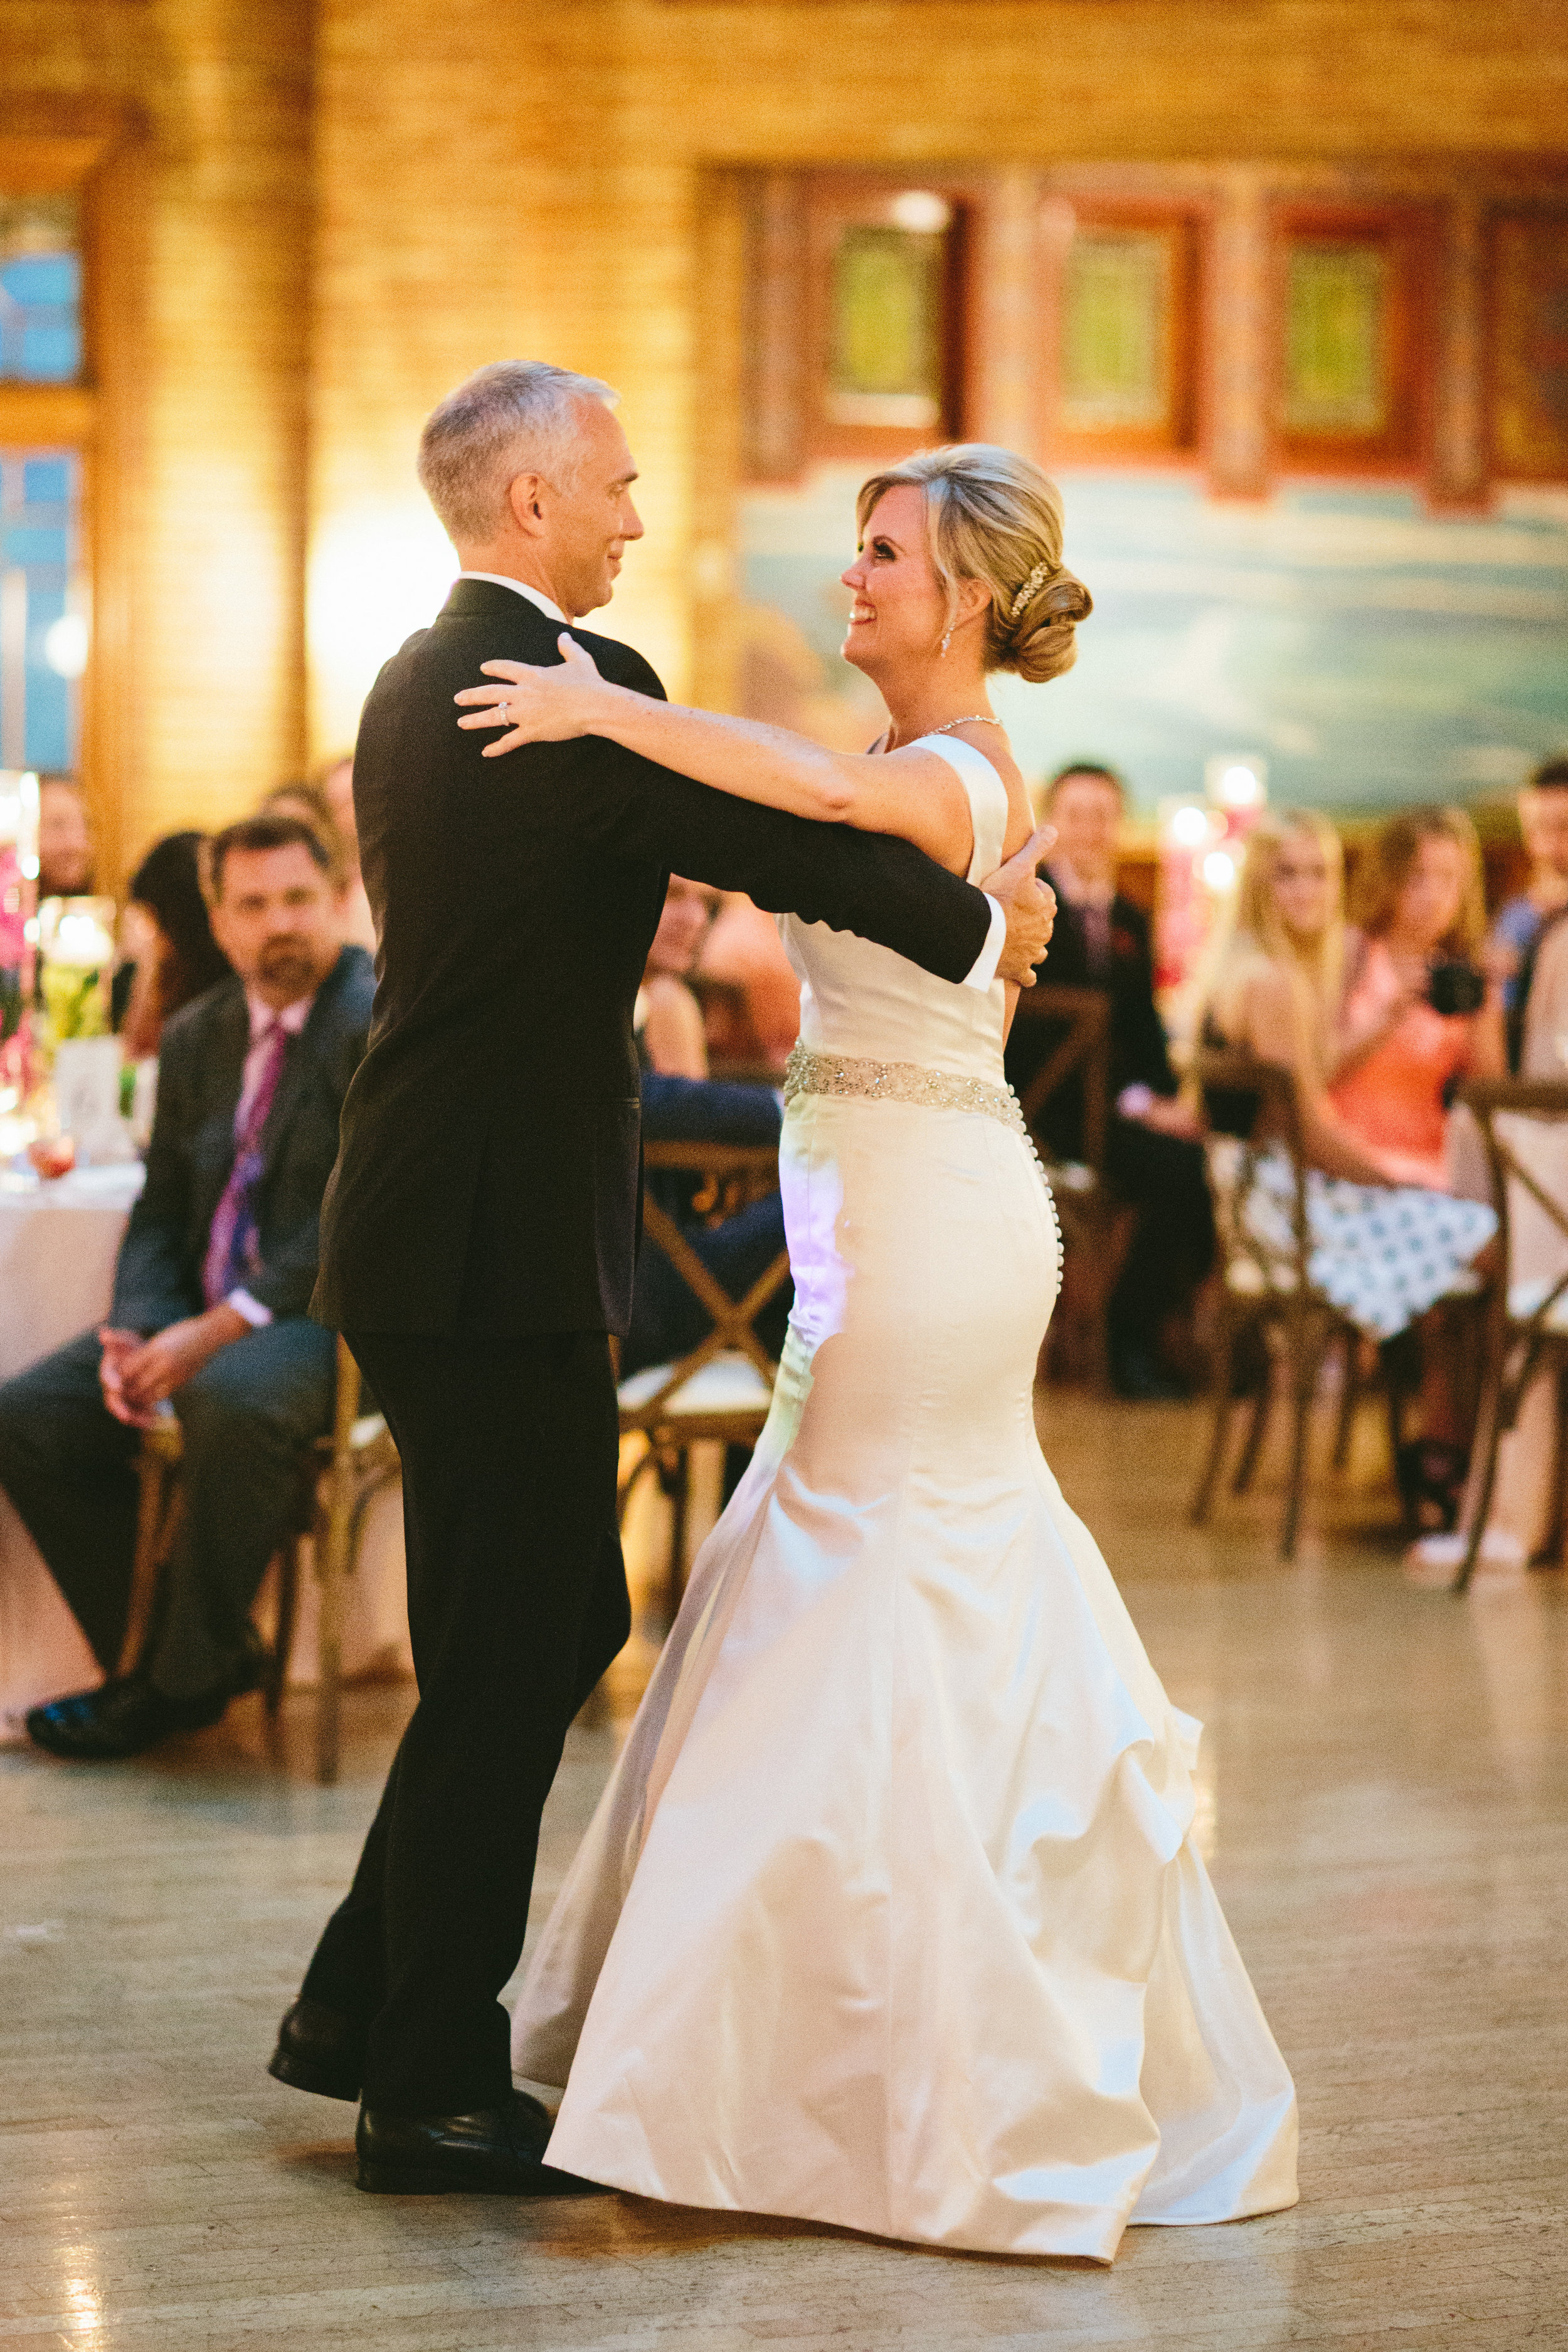 A couple performing their first dance at their wedding.